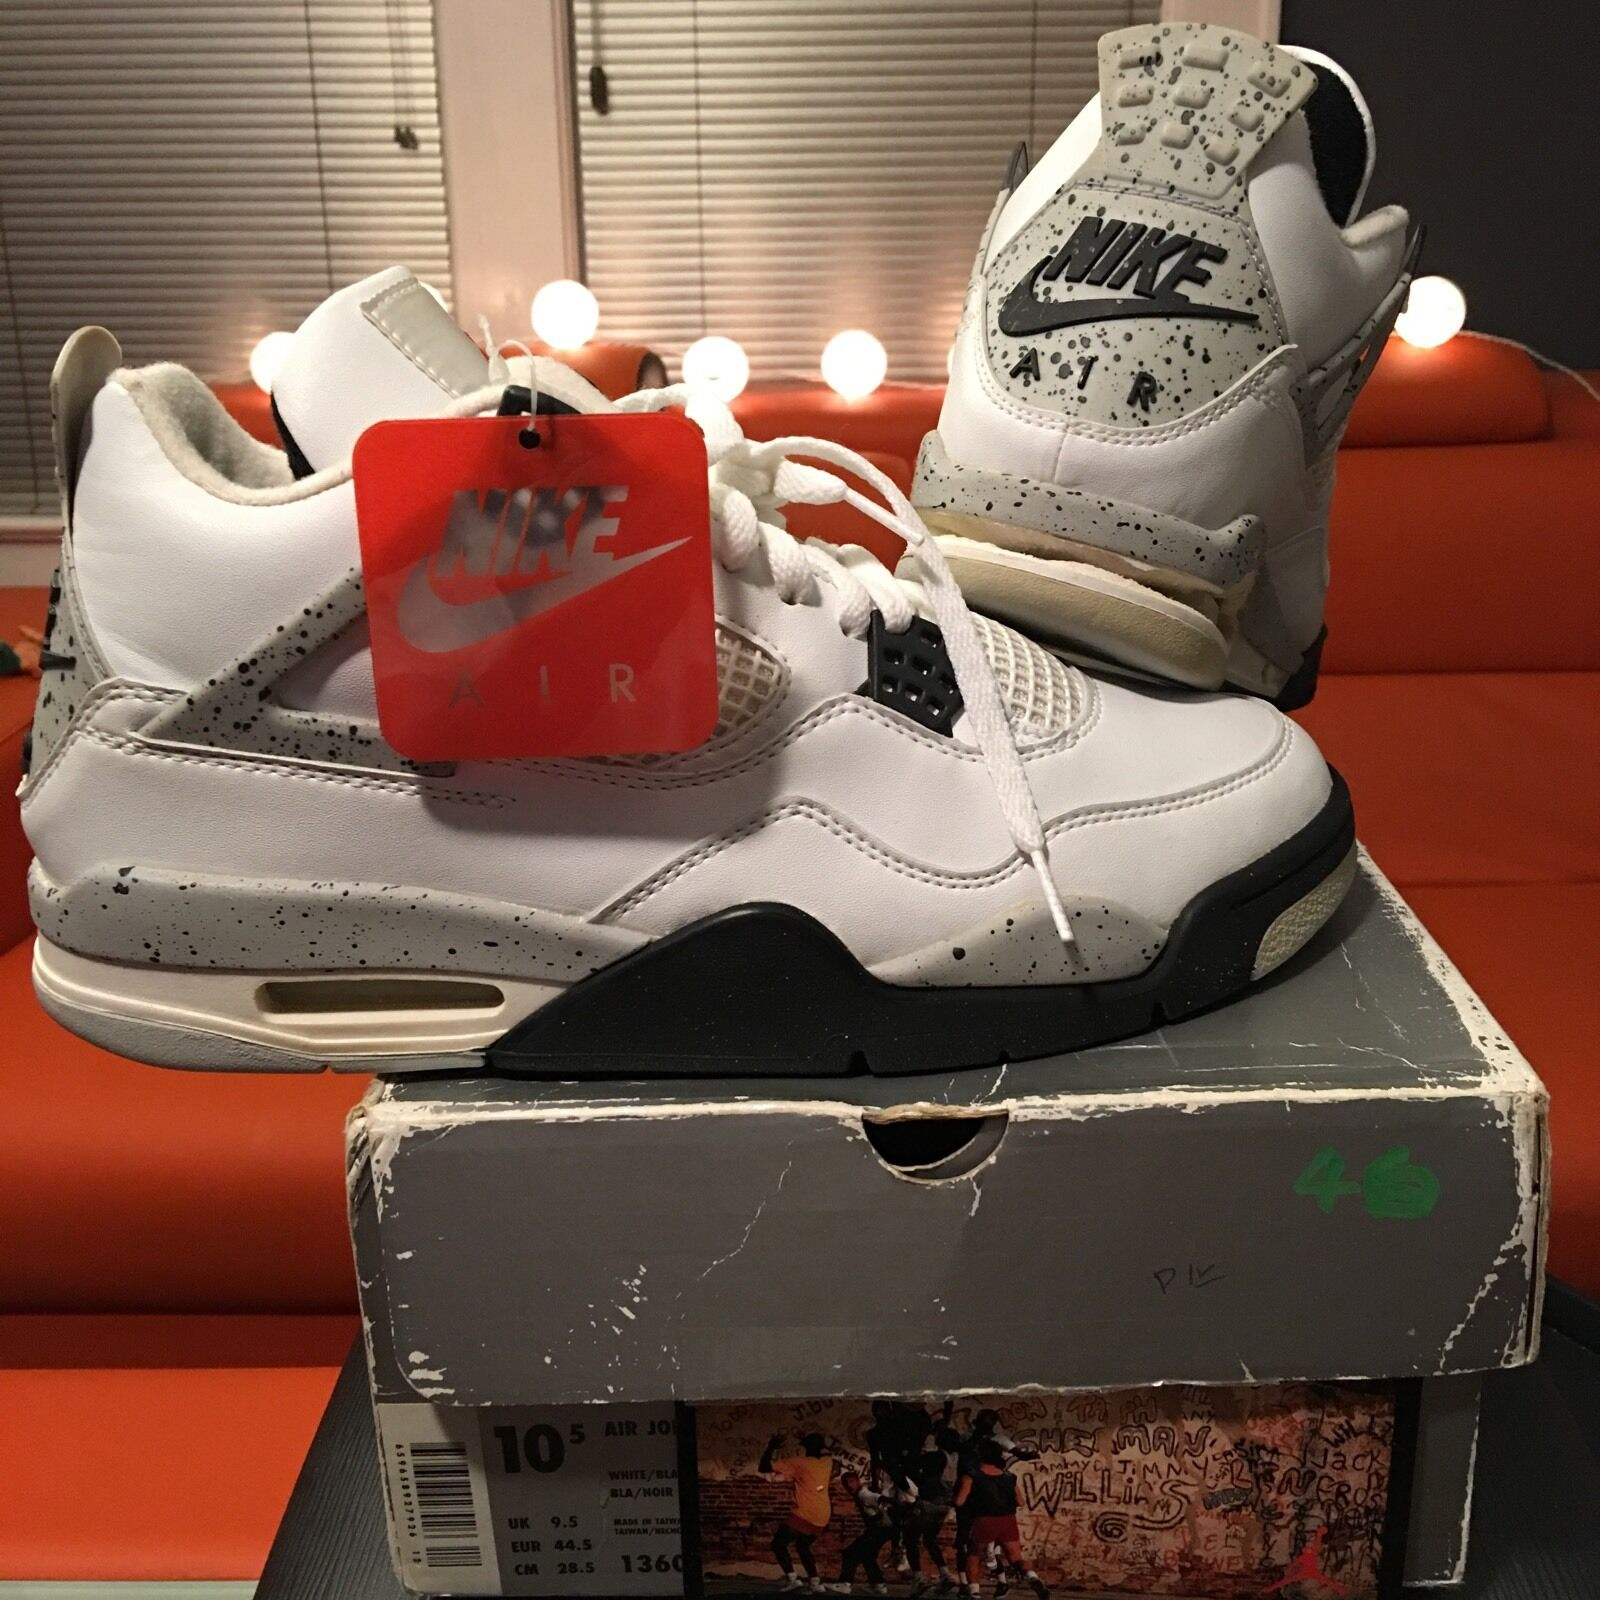 Air Jordan 4 iV White Cement Red 1999 2000 Bred Size 10.5 Nike Air Brand New